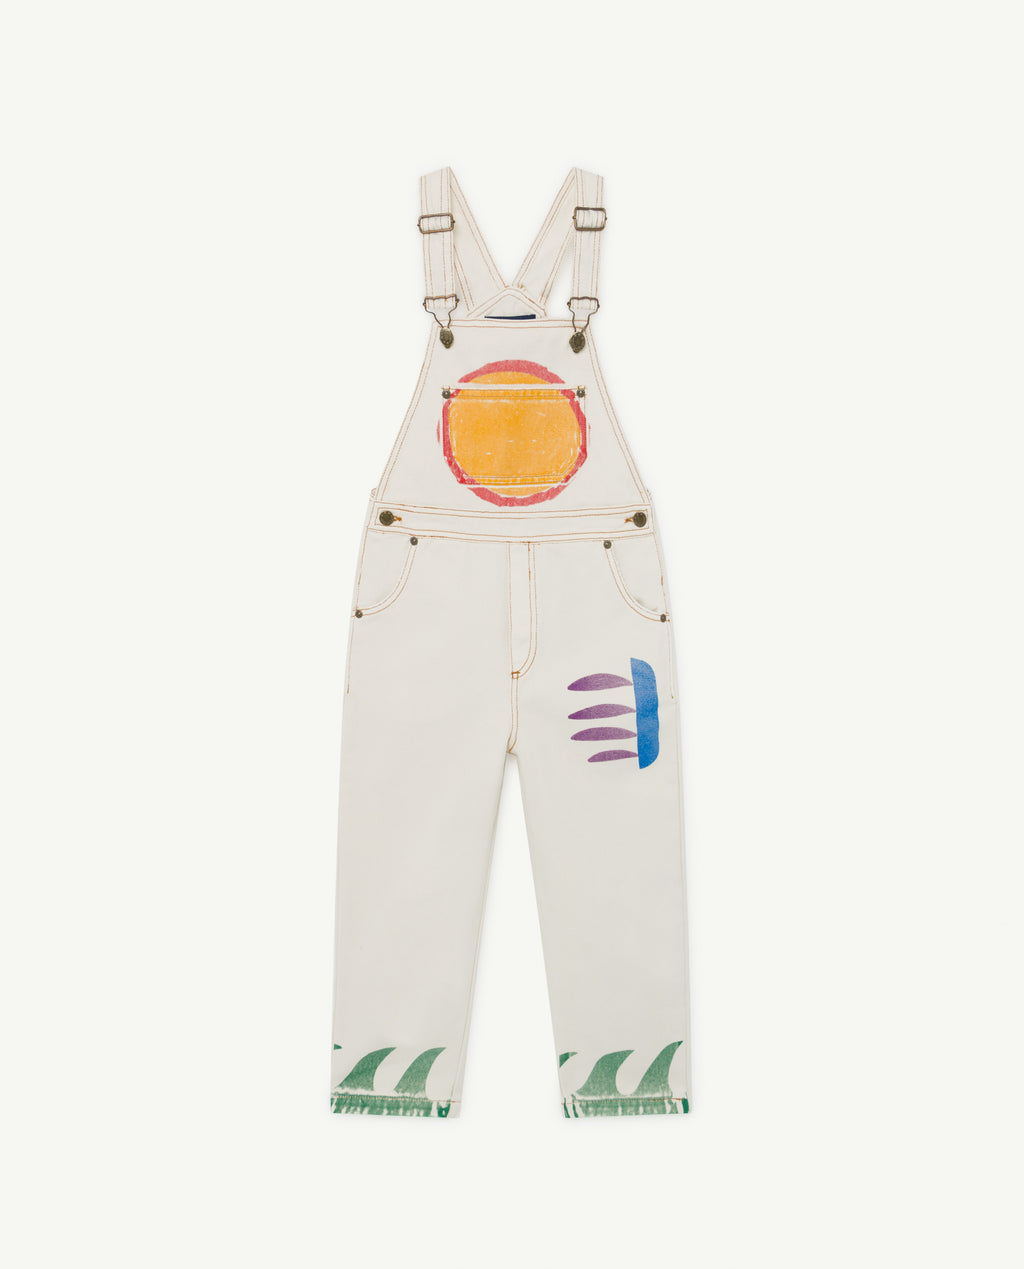 Mule Kids Dungaree - White Sun